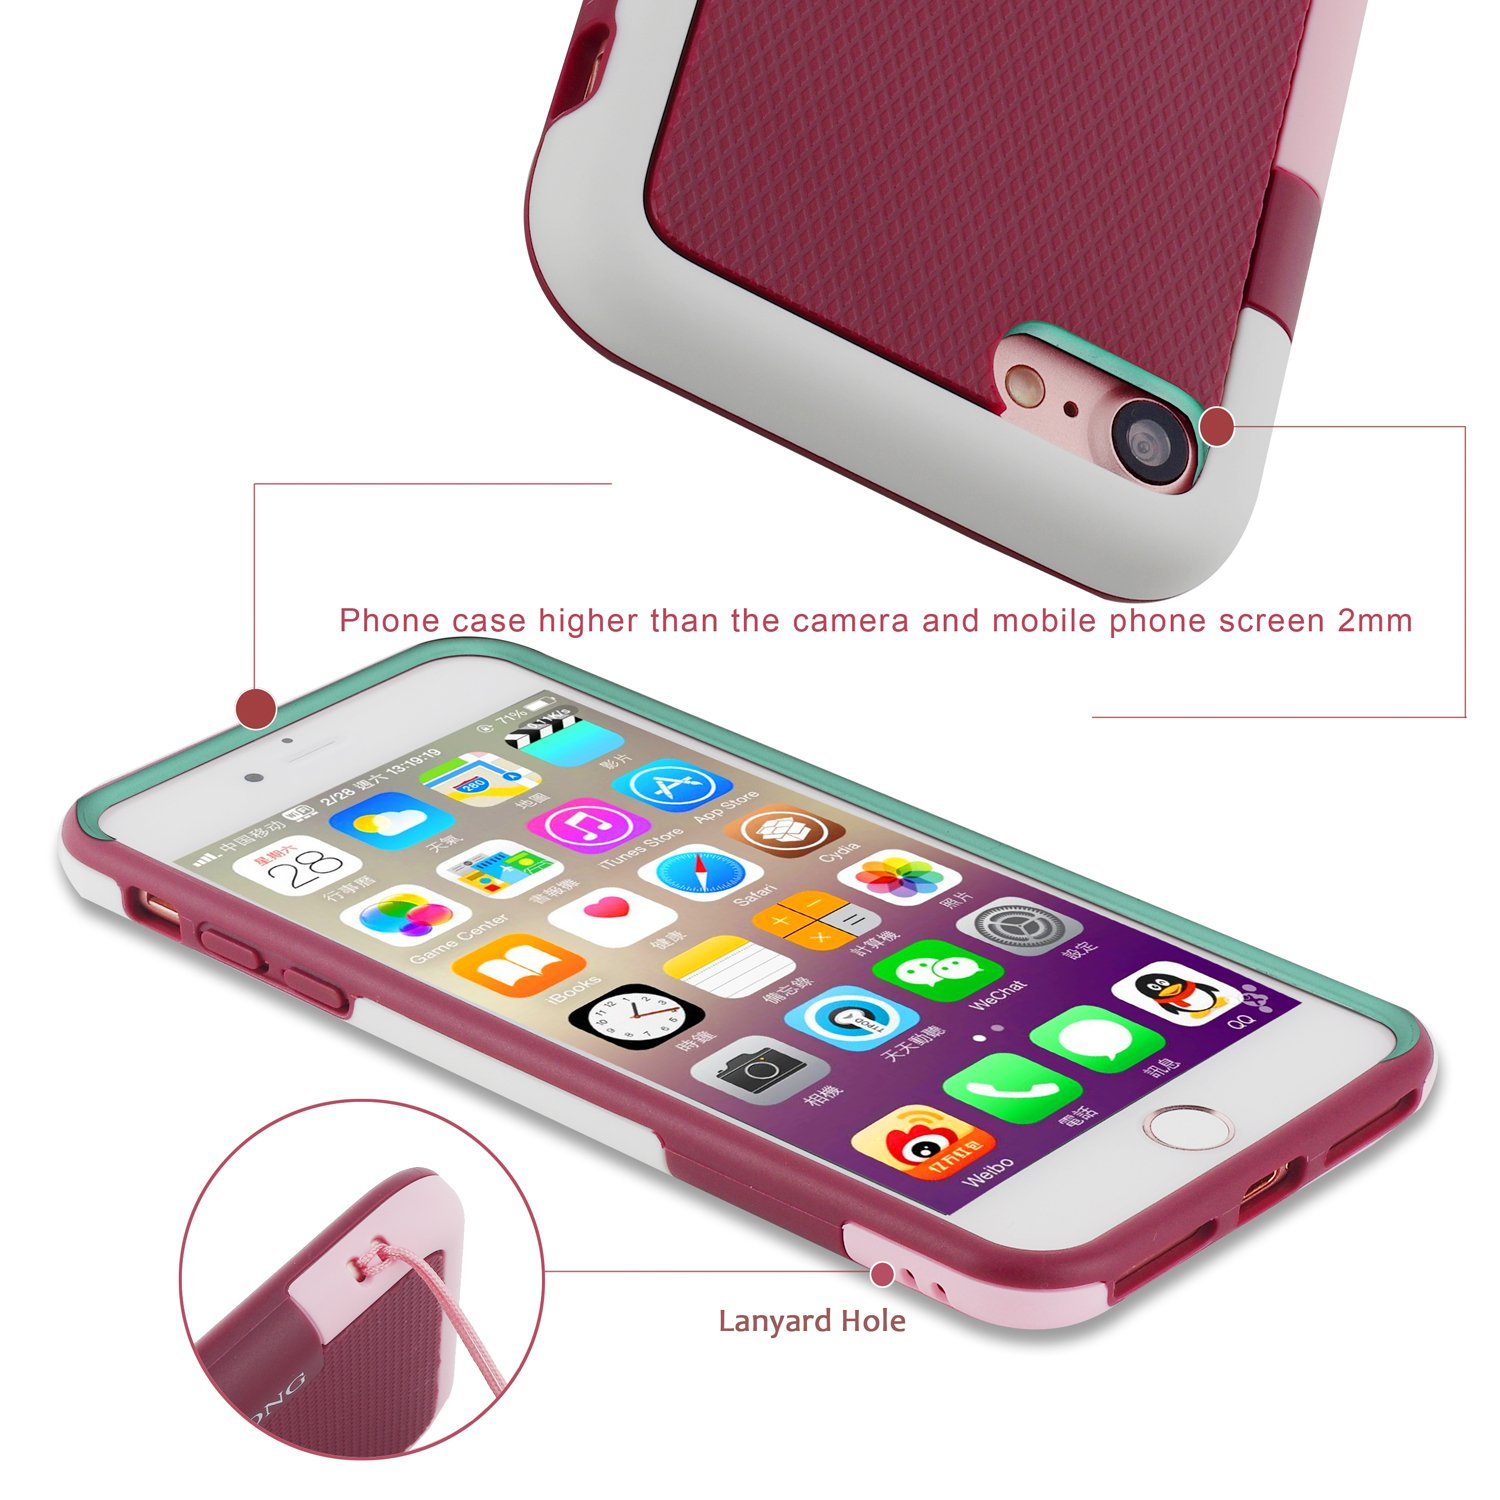 iphone 7 Case Flexible Durable Shock-Absorption Protective Case Ultra Impact 3 Color Shockproof Bumper CLONG Anti-Scratch Slim Hybrid Soft TPU & Hard PC Cover for Apple iPhone 7 4.7 inch(Wine Red)